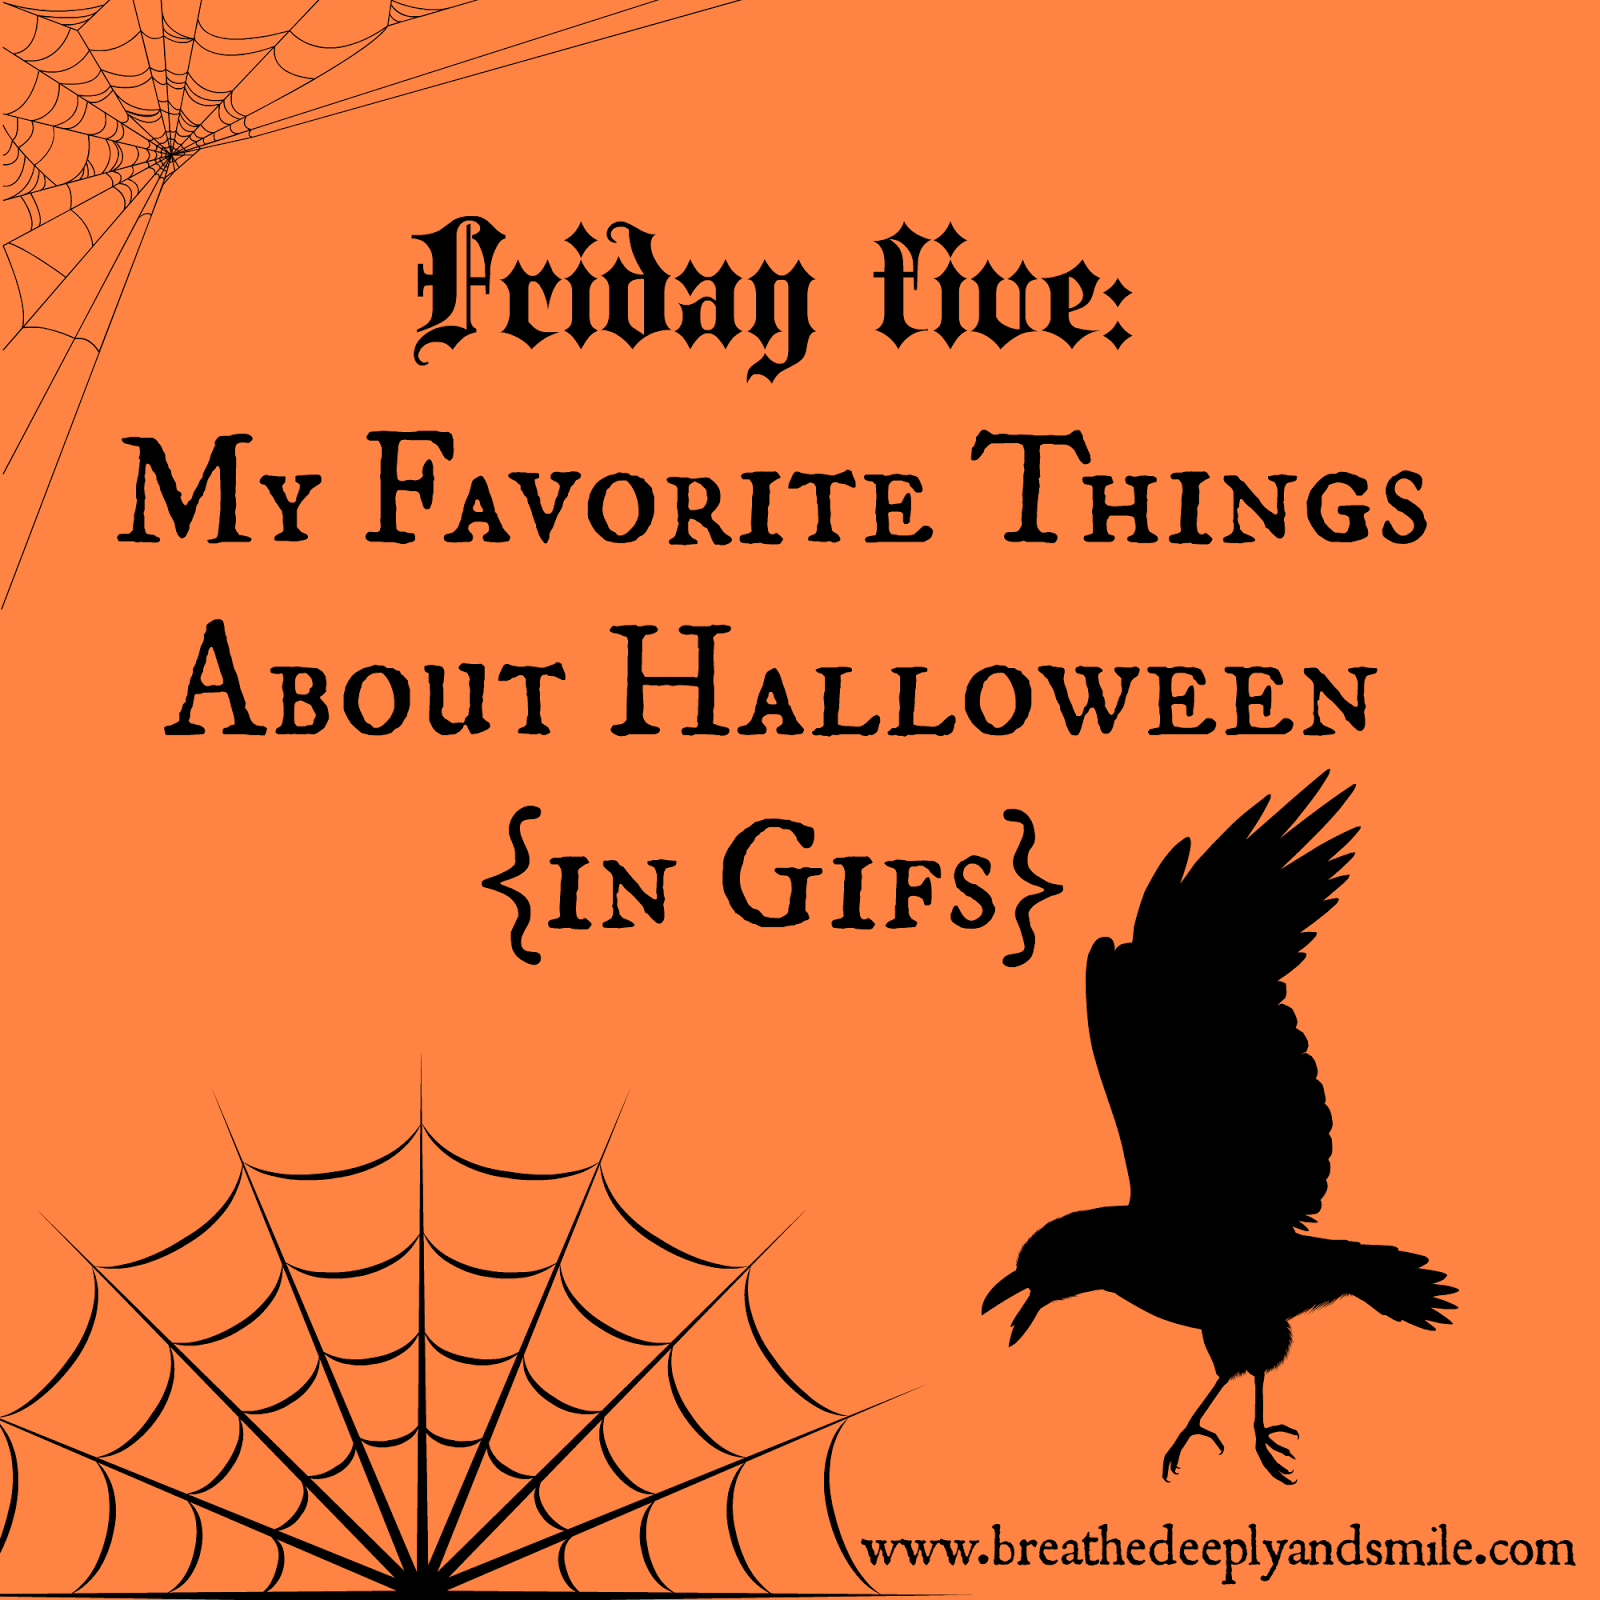 My-Favorite-Things-About-Halloween-in-gifs1